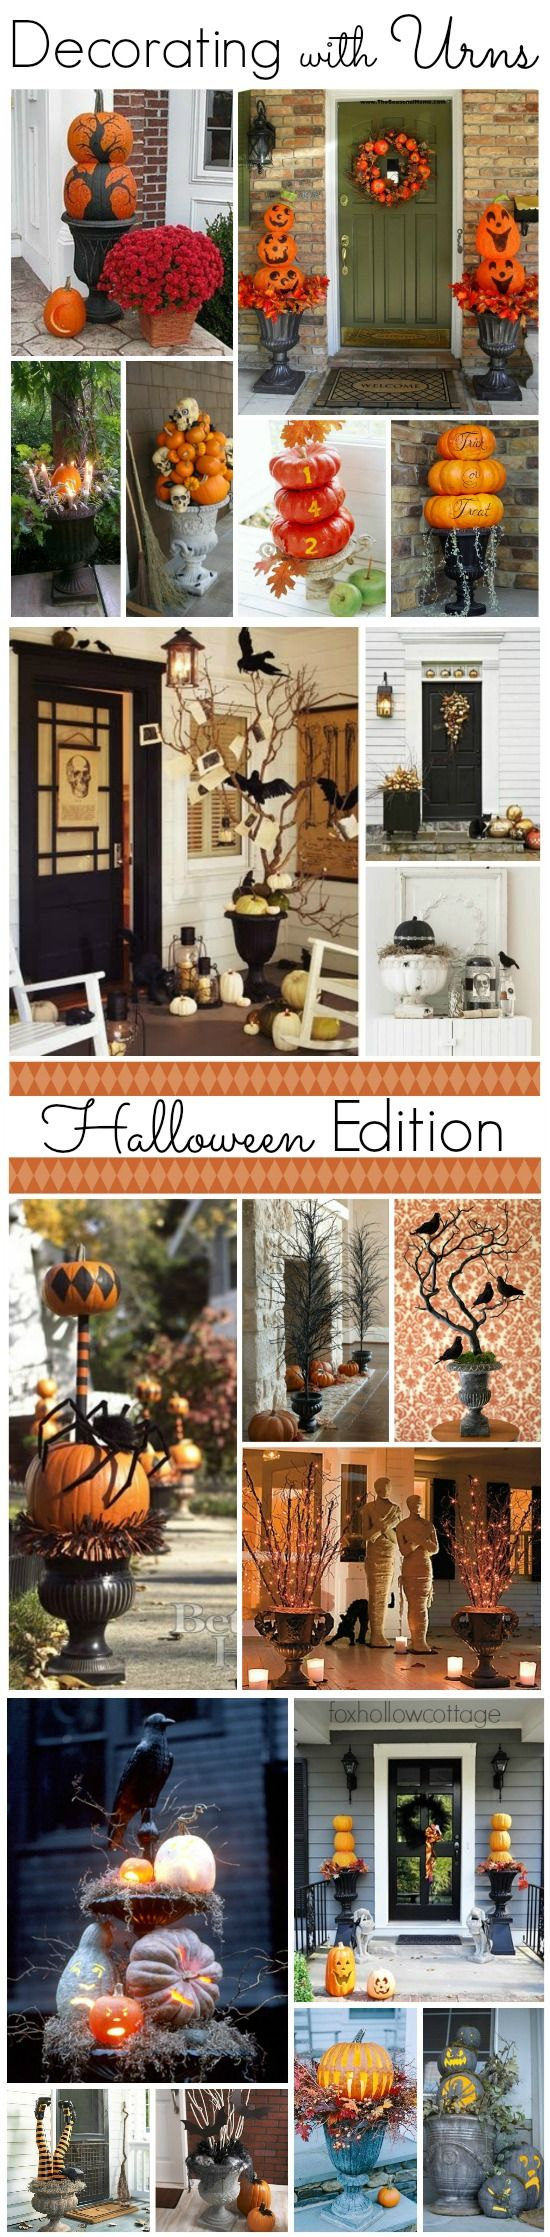 Halloween Urn Decorations Endearing Decorating With Urns The Halloween Edition  Urn Porch And Decorating Decorating Design